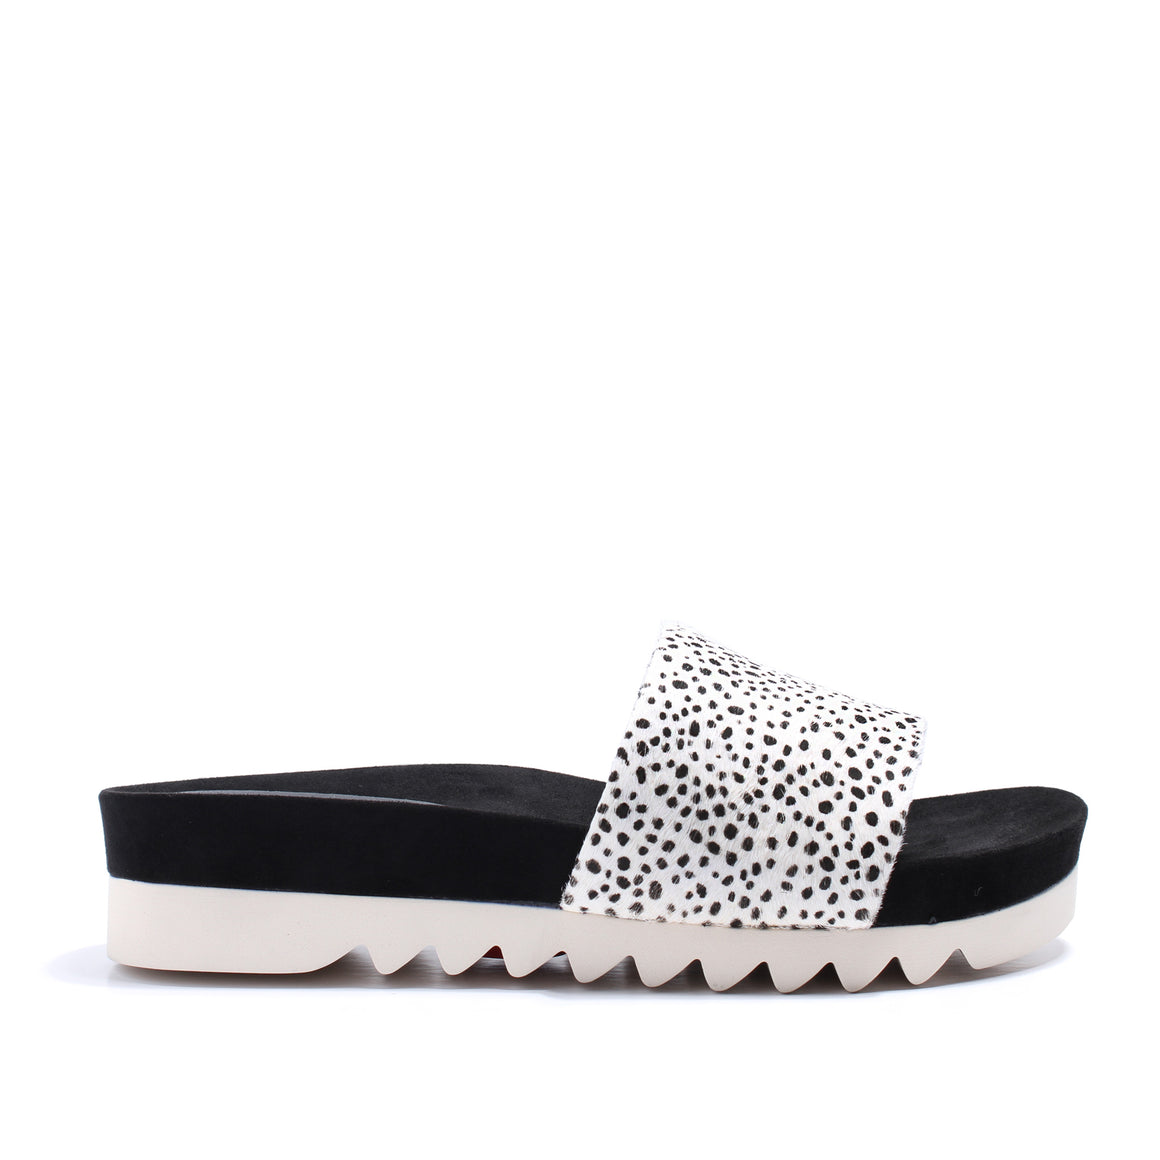 Rollie Sandal Slide Tooth Wedge - Snow Leopard